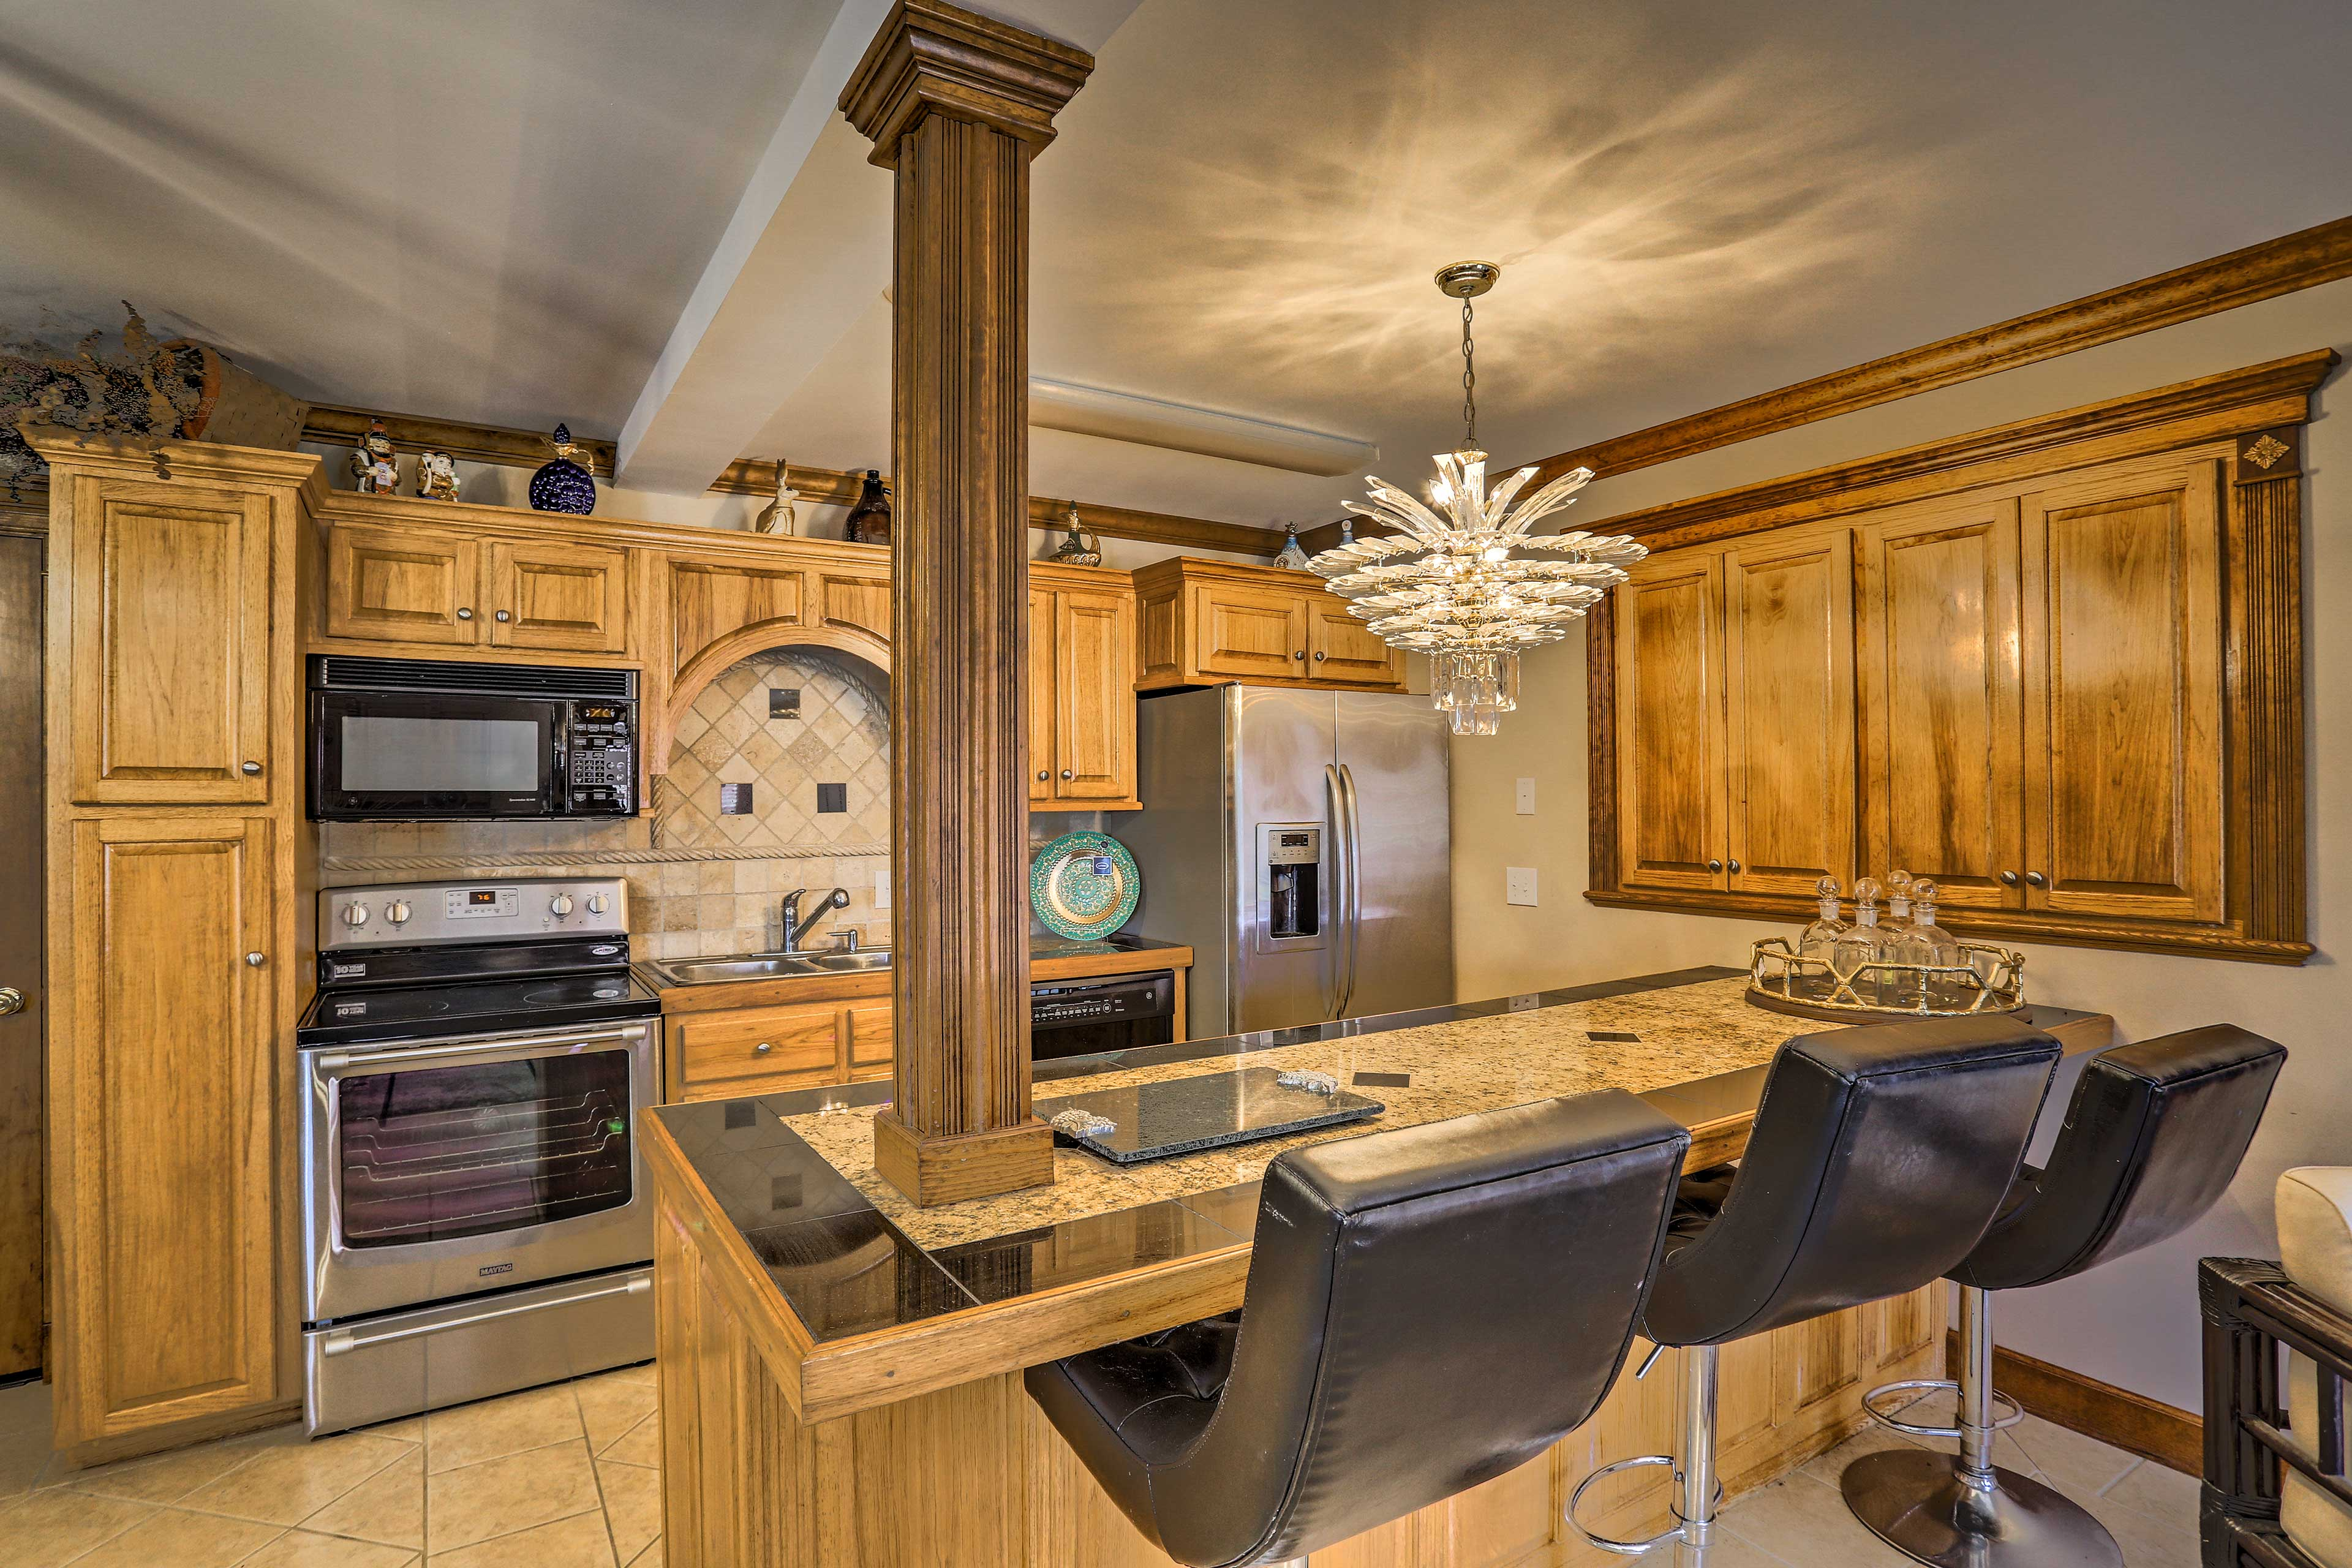 This home offers 2 fully equipped kitchens!